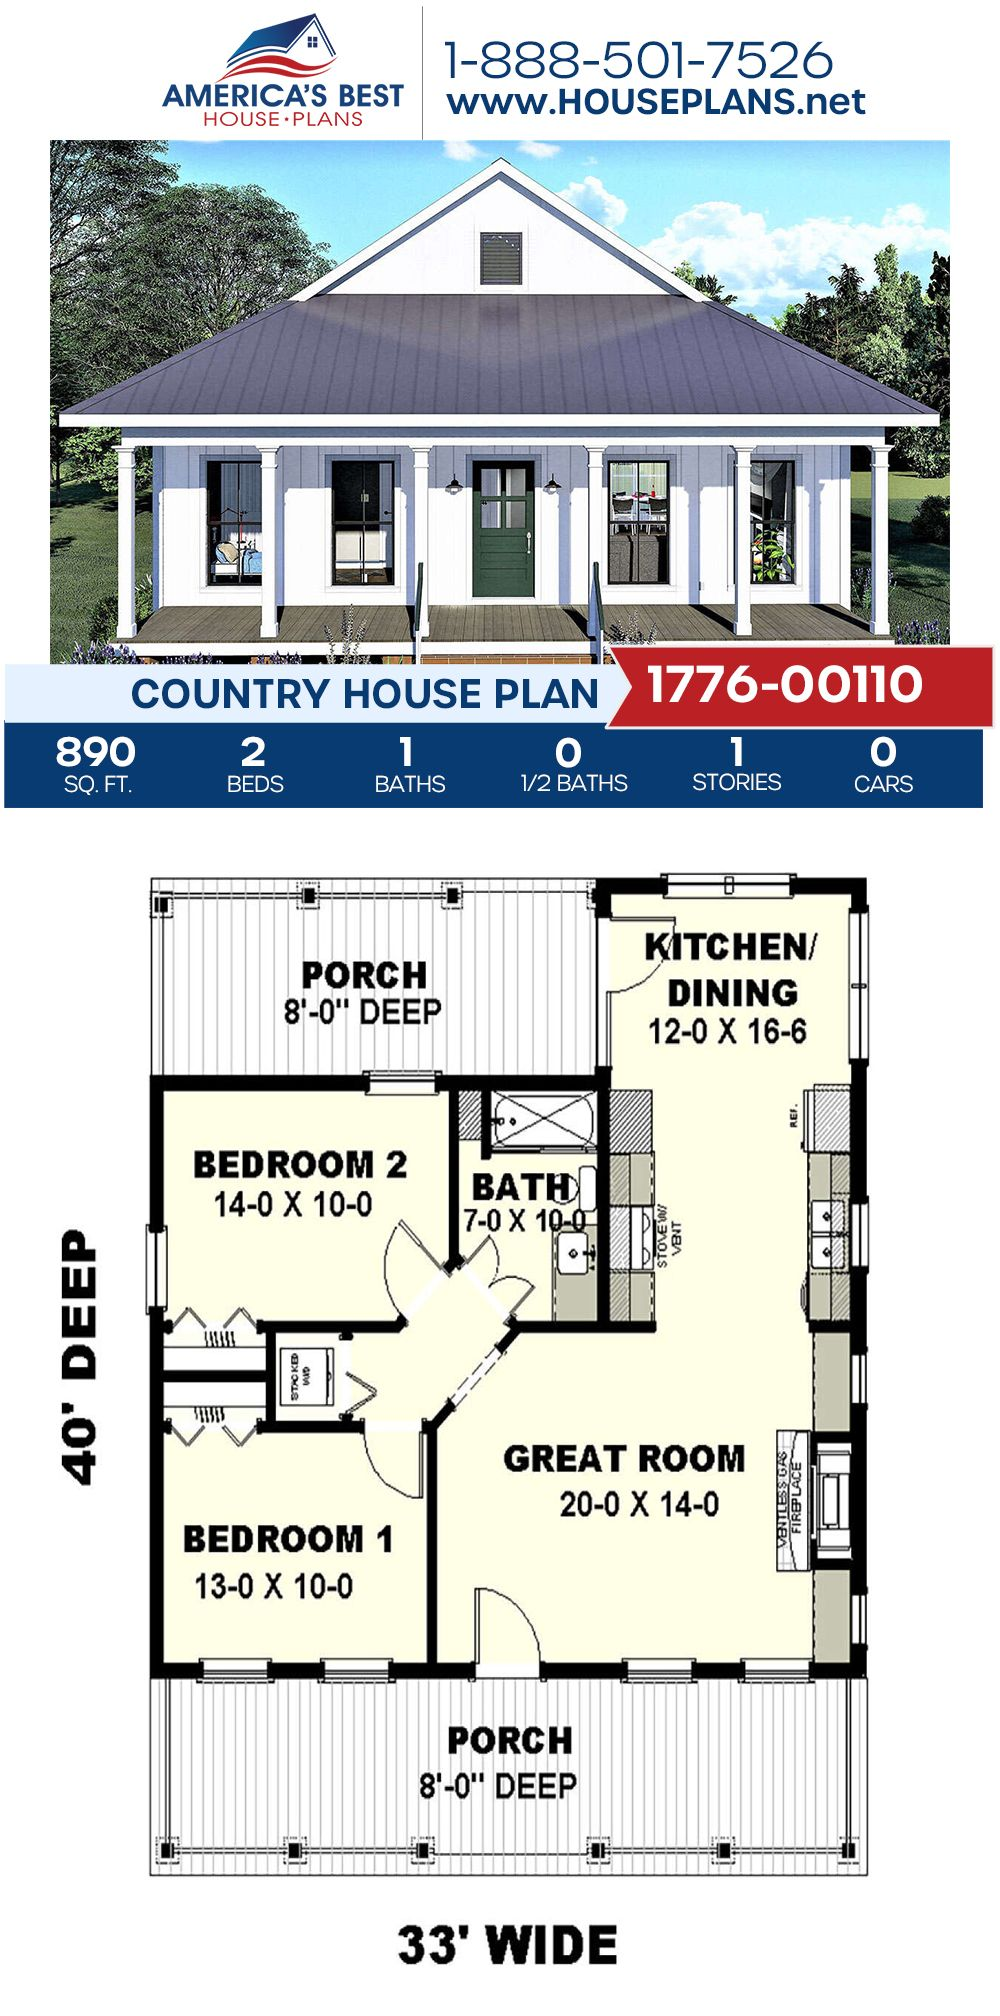 House Plan 1776 00110 Country Plan 890 Square Feet 2 Bedrooms 1 Bathroom Affordable House Plans Guest House Plans Cottage Floor Plans